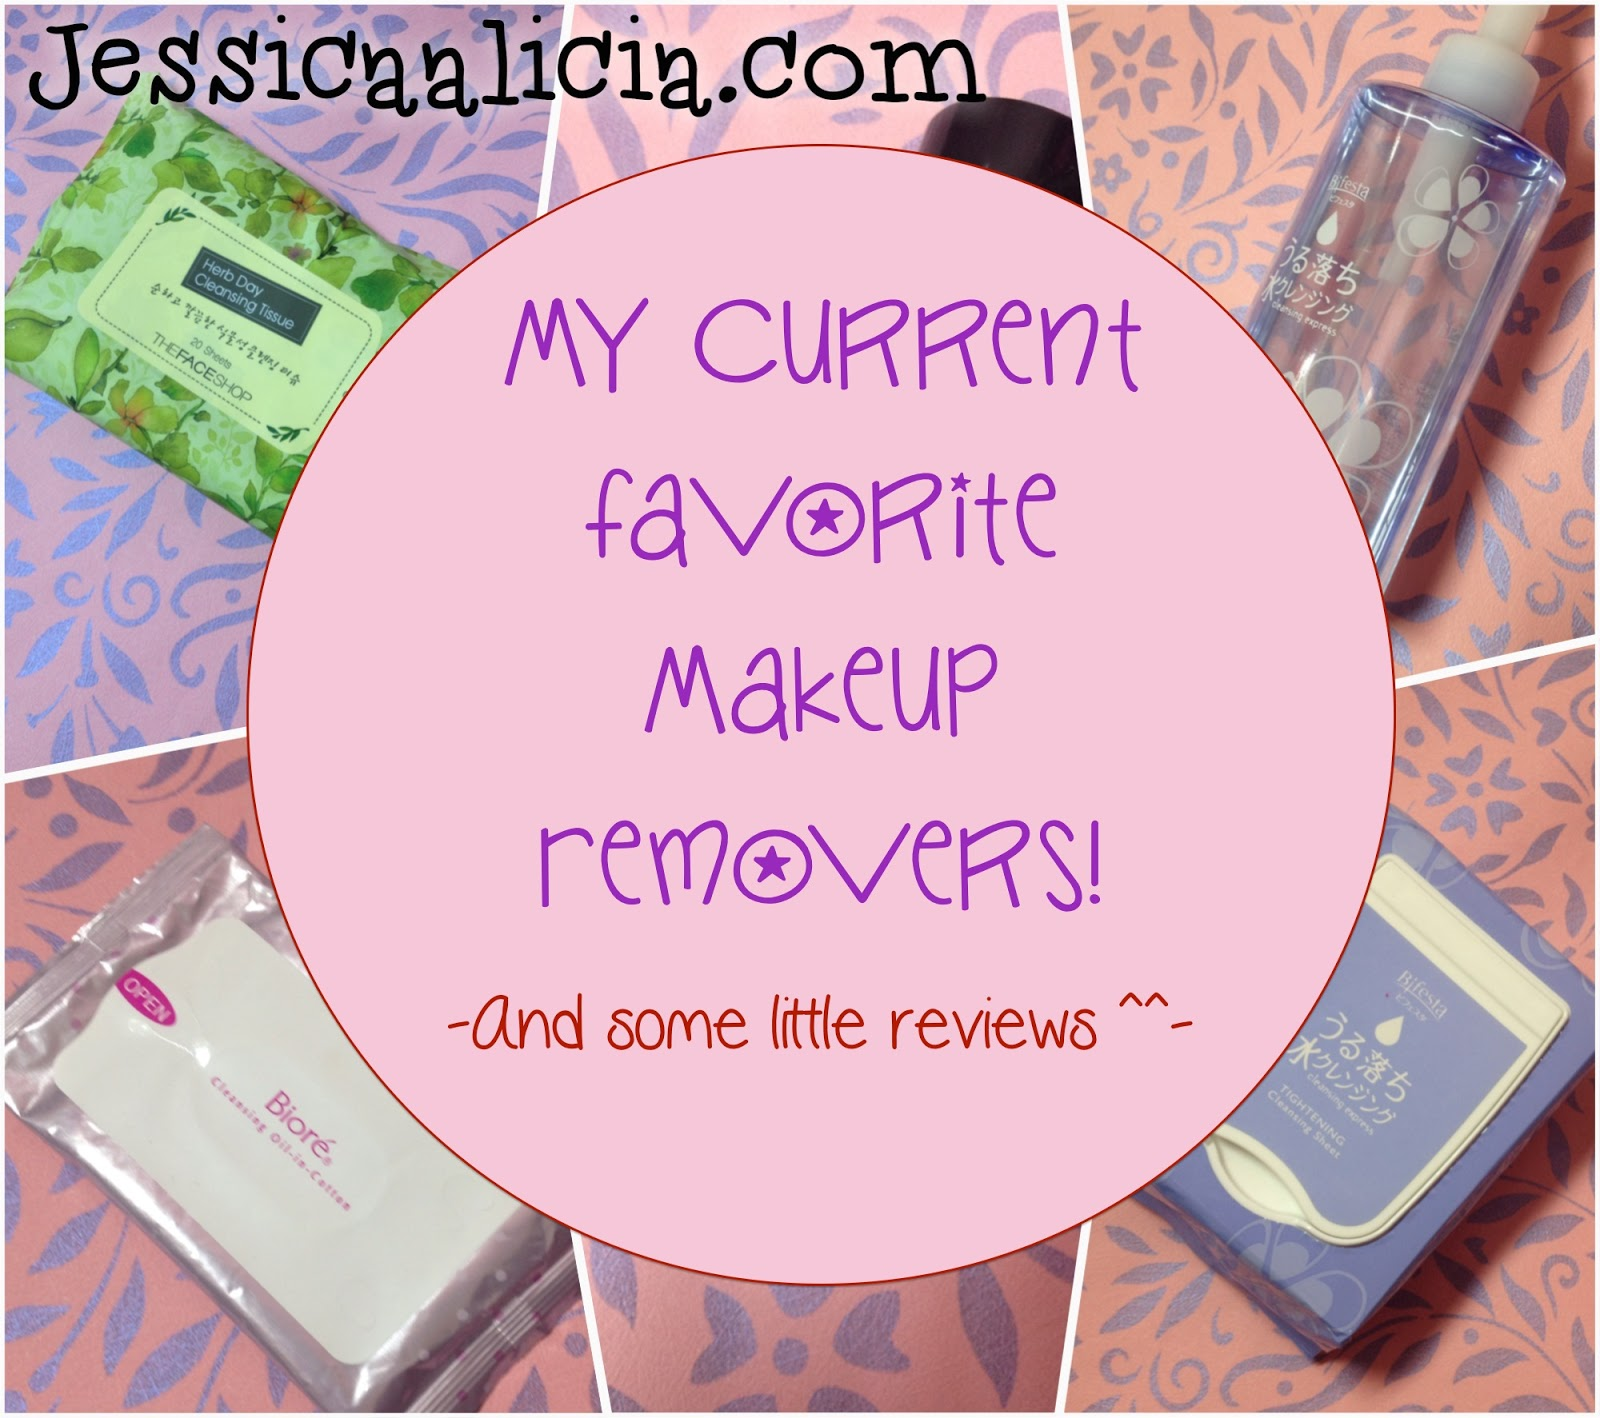 My Current Favorite Makeup Removers! by Jessica Alicia